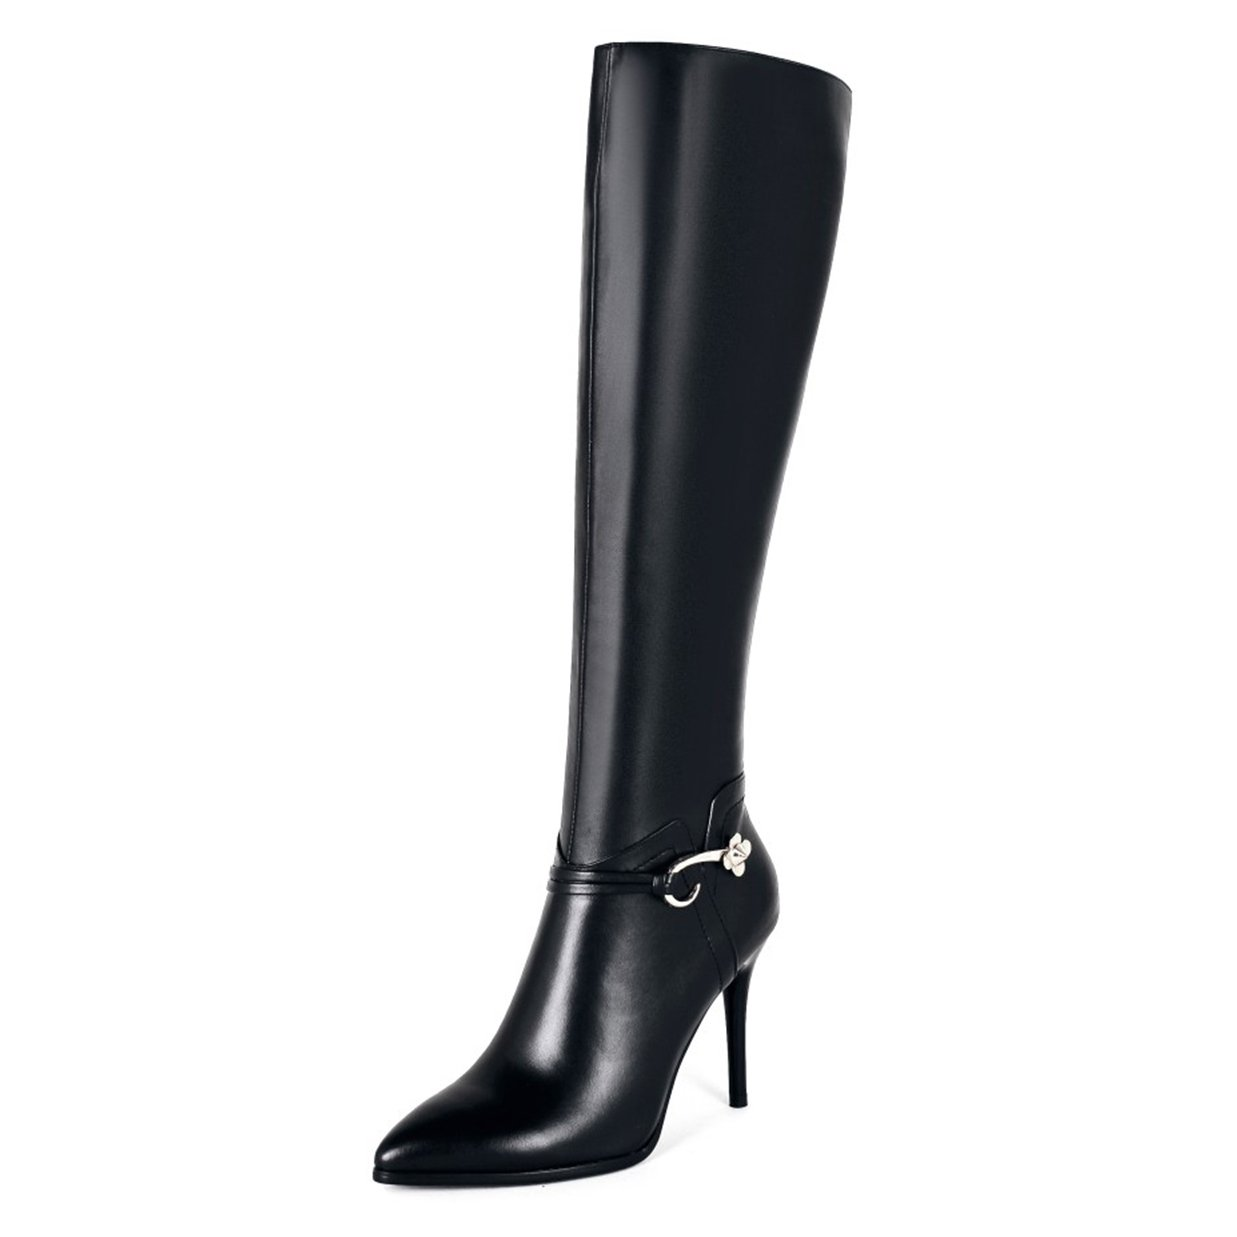 VOCOSI Women's Classic Side-Zip High Heels Leather Riding Boots Pointy Toe Knee-High Dress Boot B075QCS132 10 M US|Black With Metal Buckle